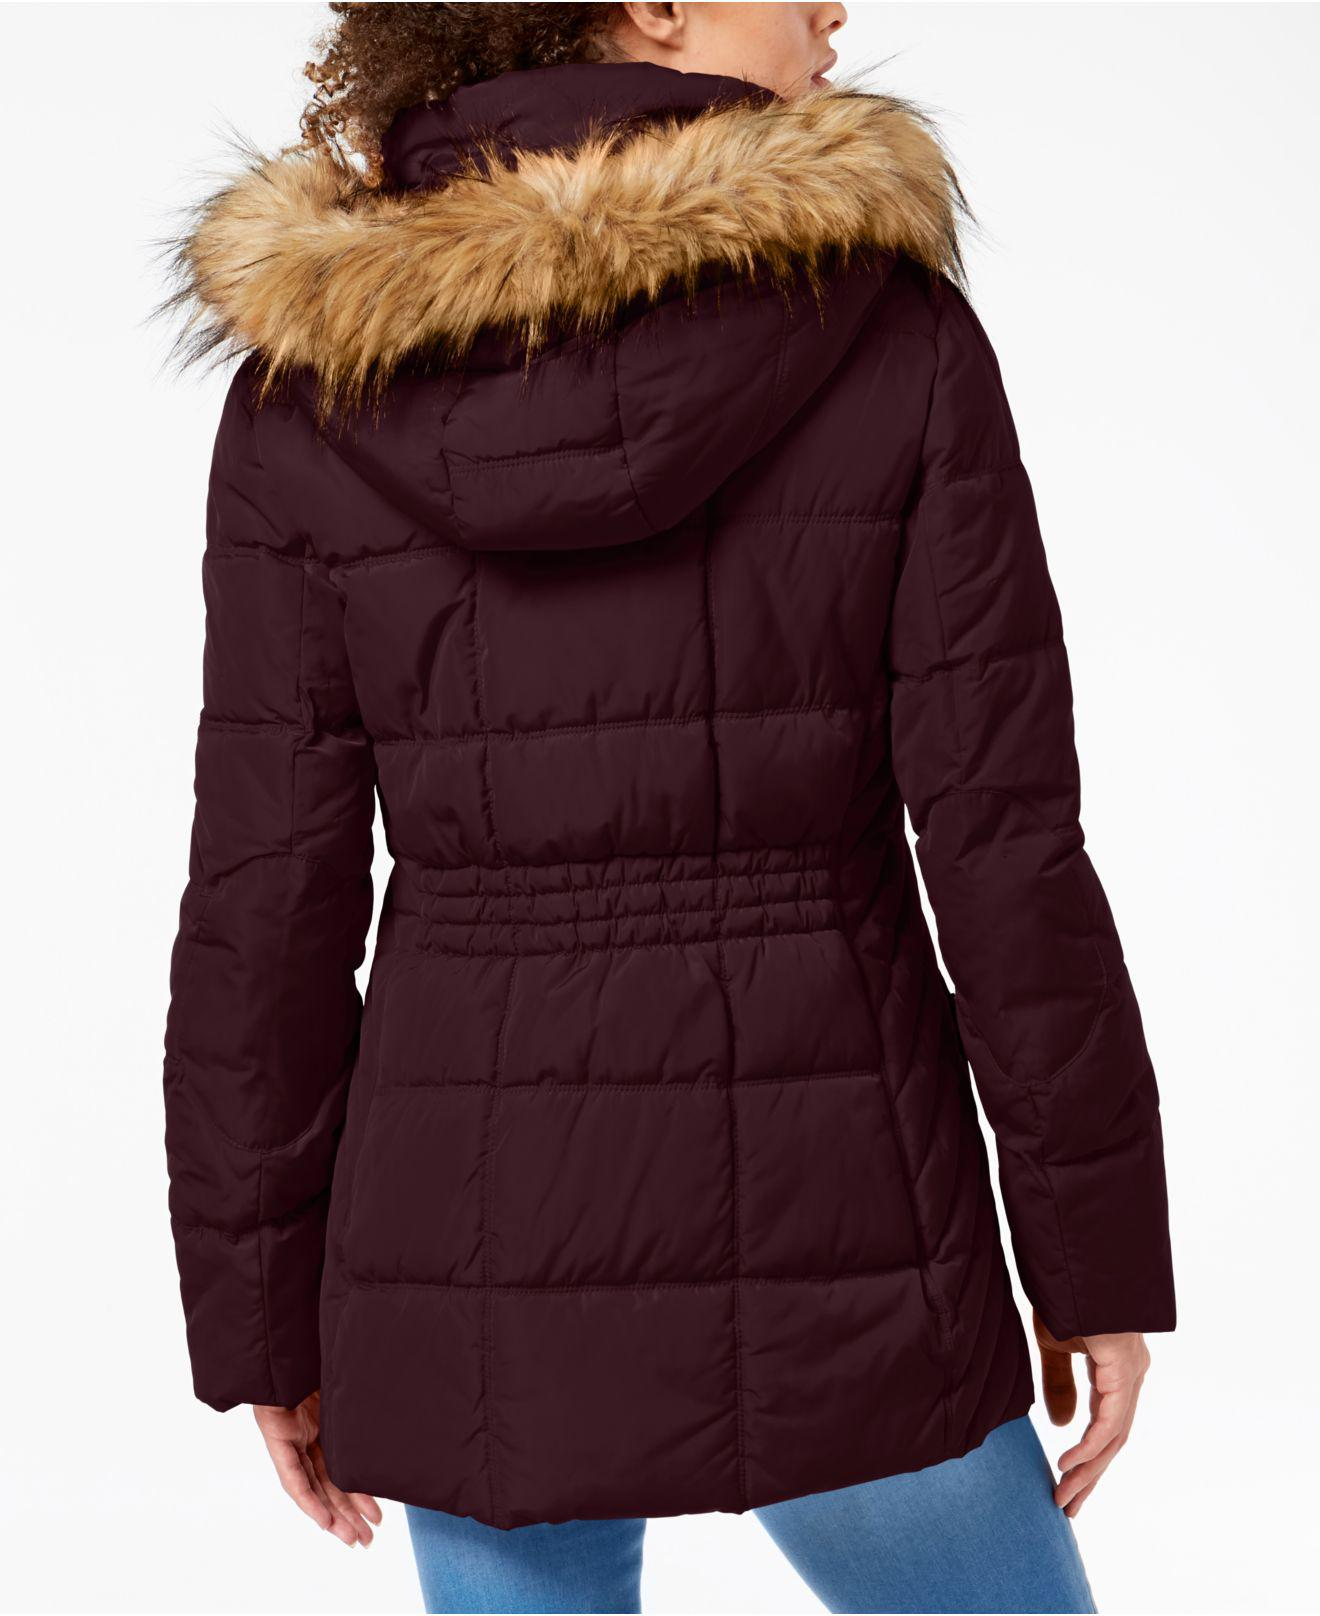 9ed6fc1262cff Lyst - Tommy Hilfiger Faux-fur-trim Hooded Puffer Coat in Purple - Save  10.769230769230774%